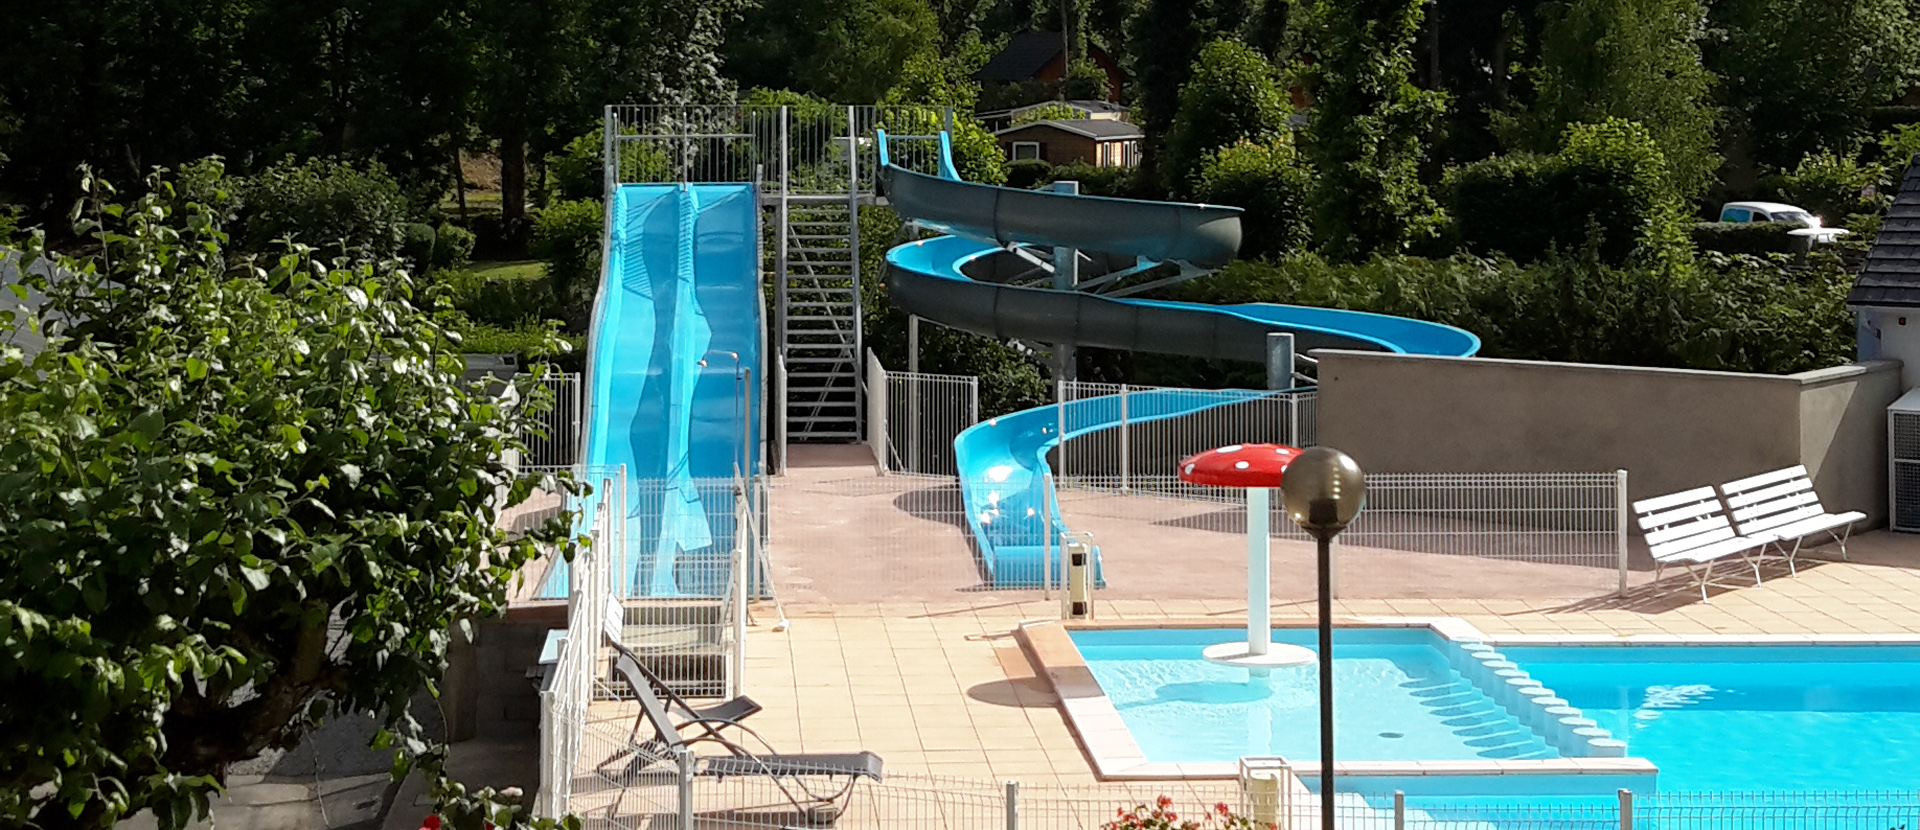 Exceptional Camping In Auvergne With Indoor And Heated Swimming Pool. Campsite Aquatic  Area